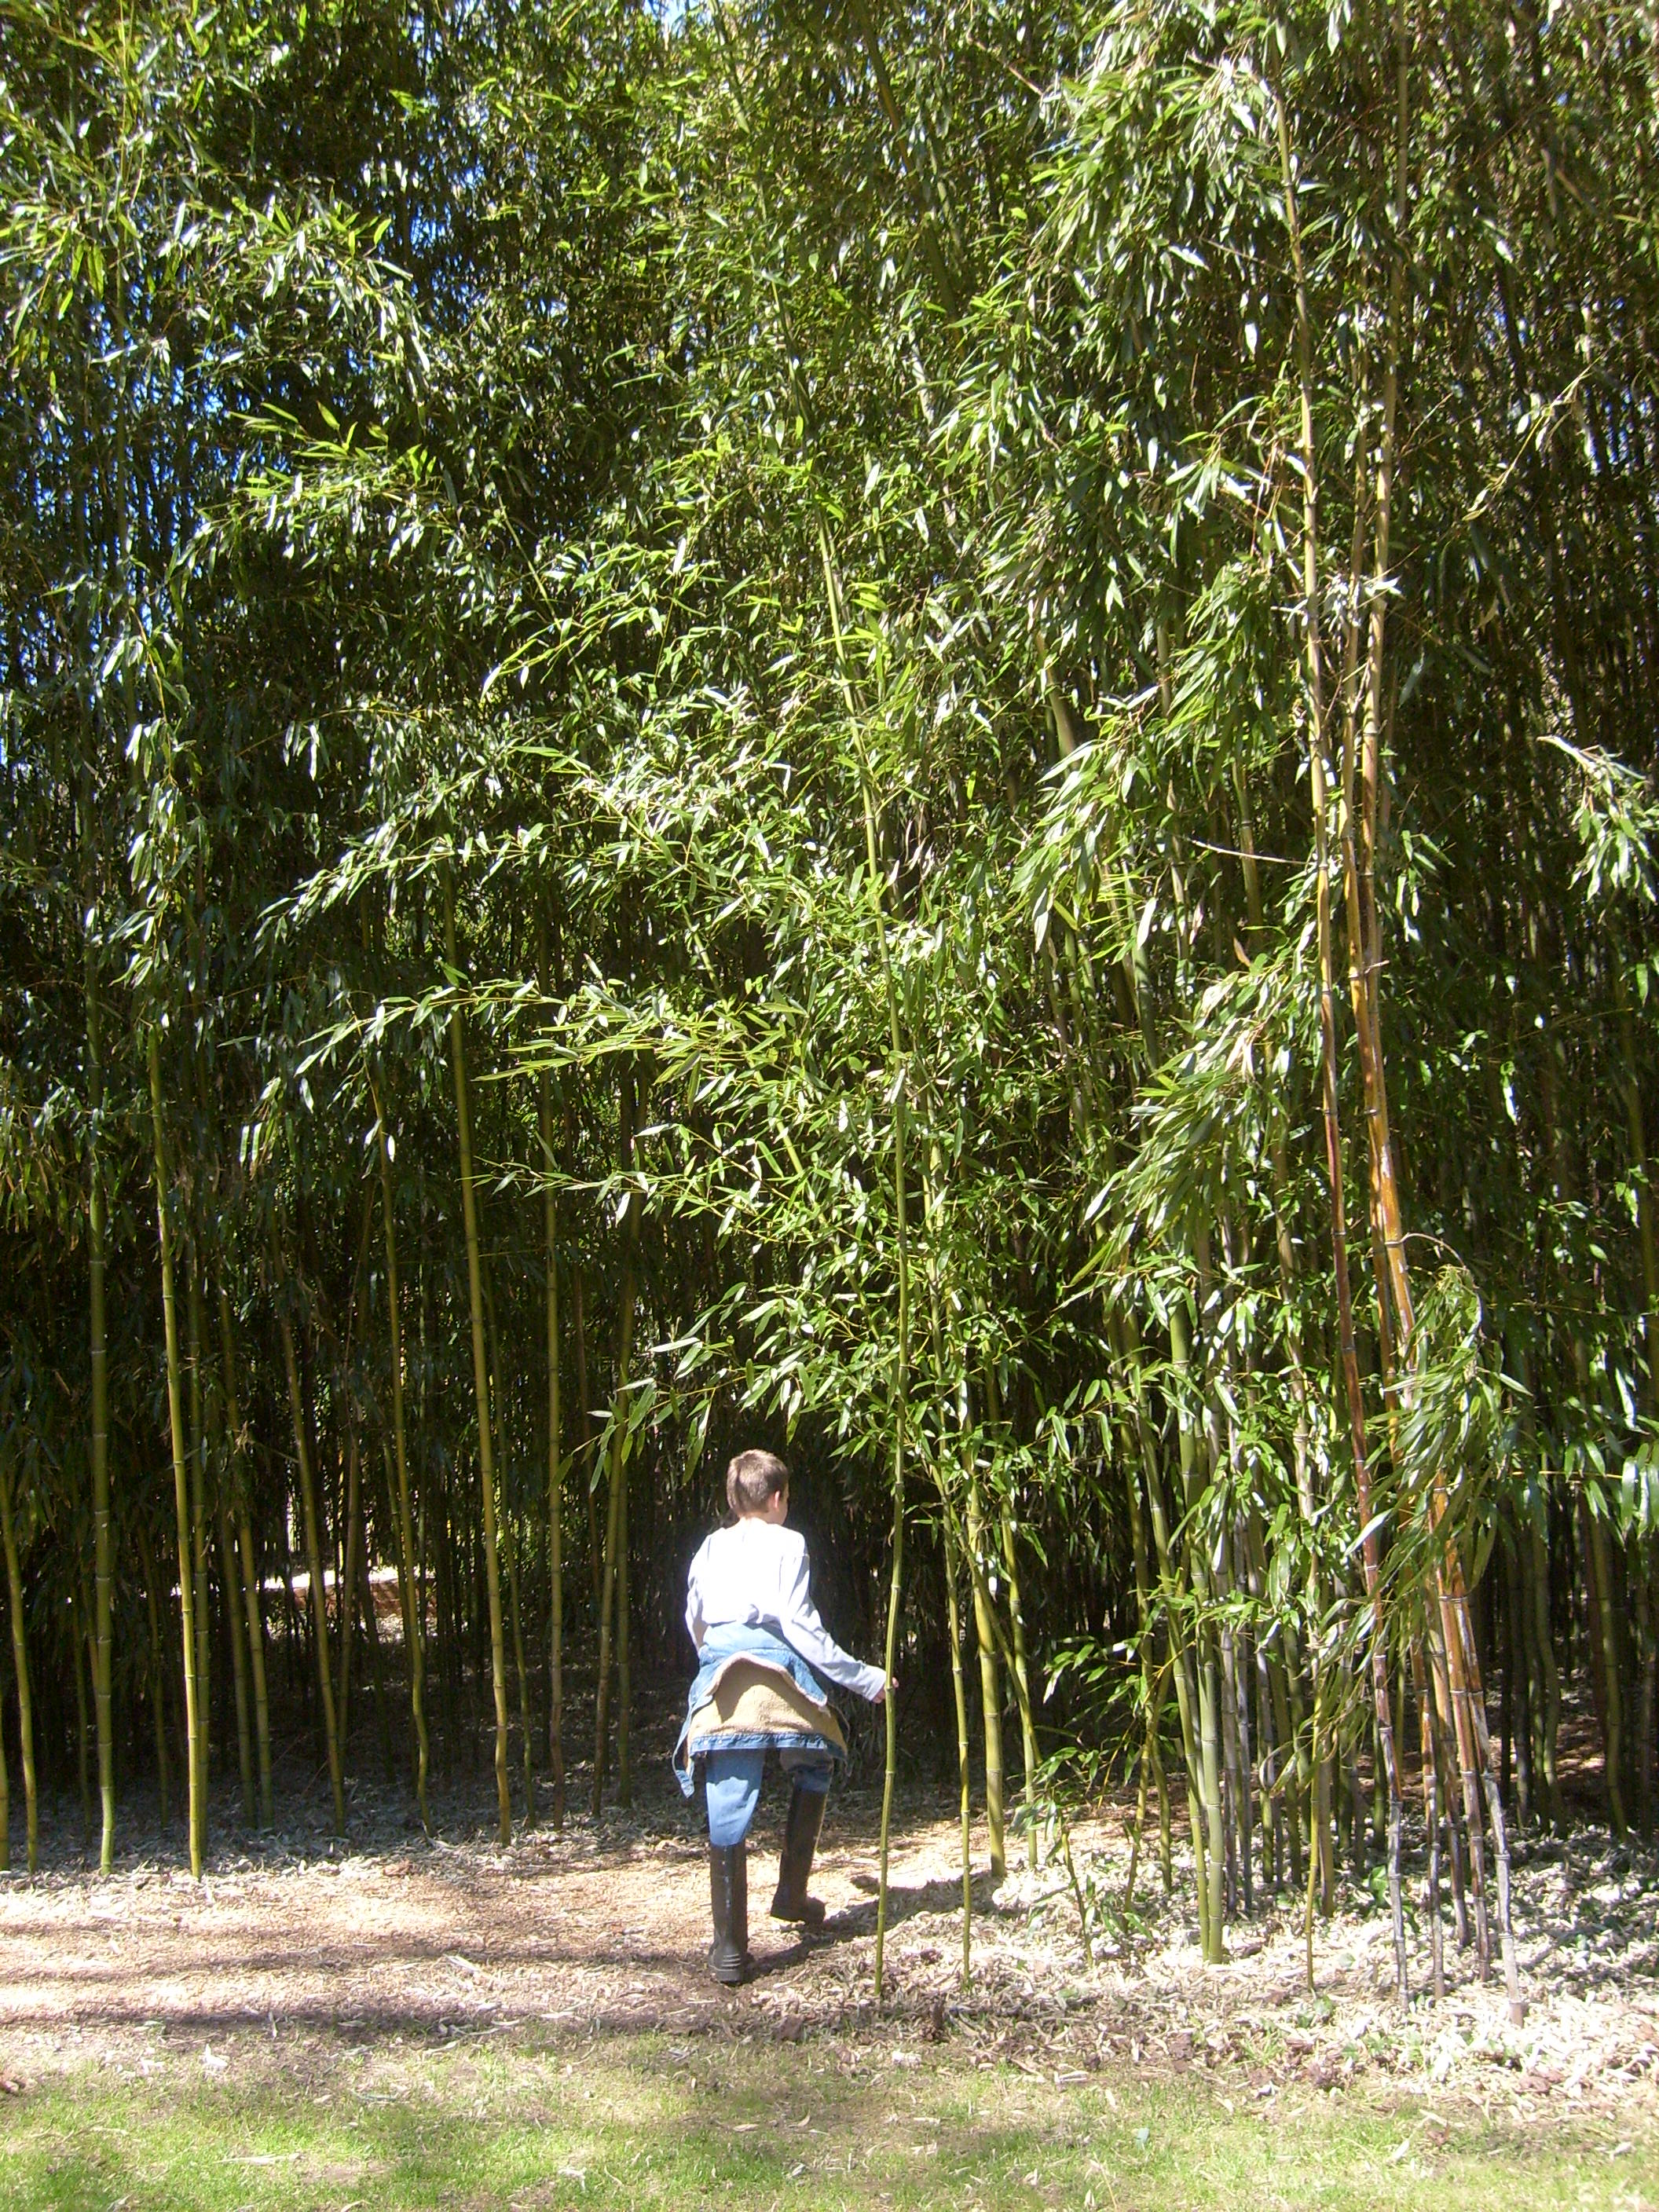 M entering the bamboo grove at Blythewold Mansion and Gardens